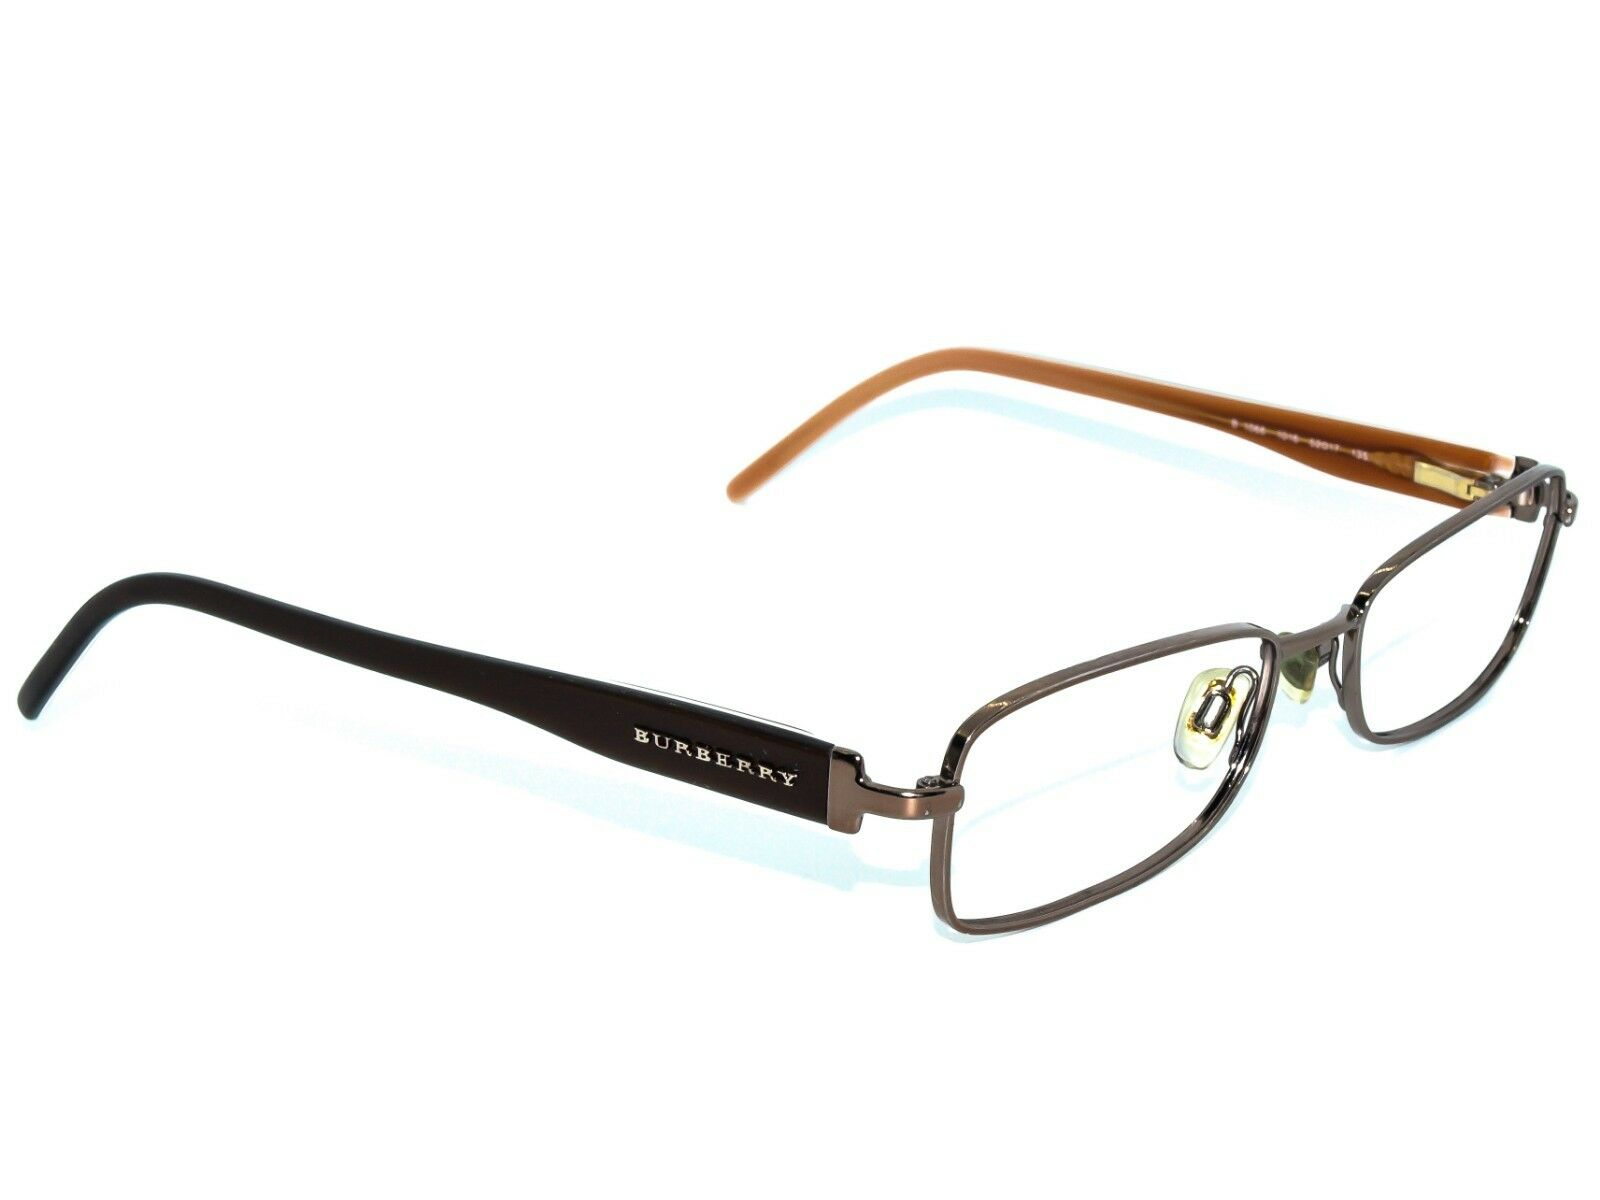 Burberry B 1066 1016 Eyeglasses